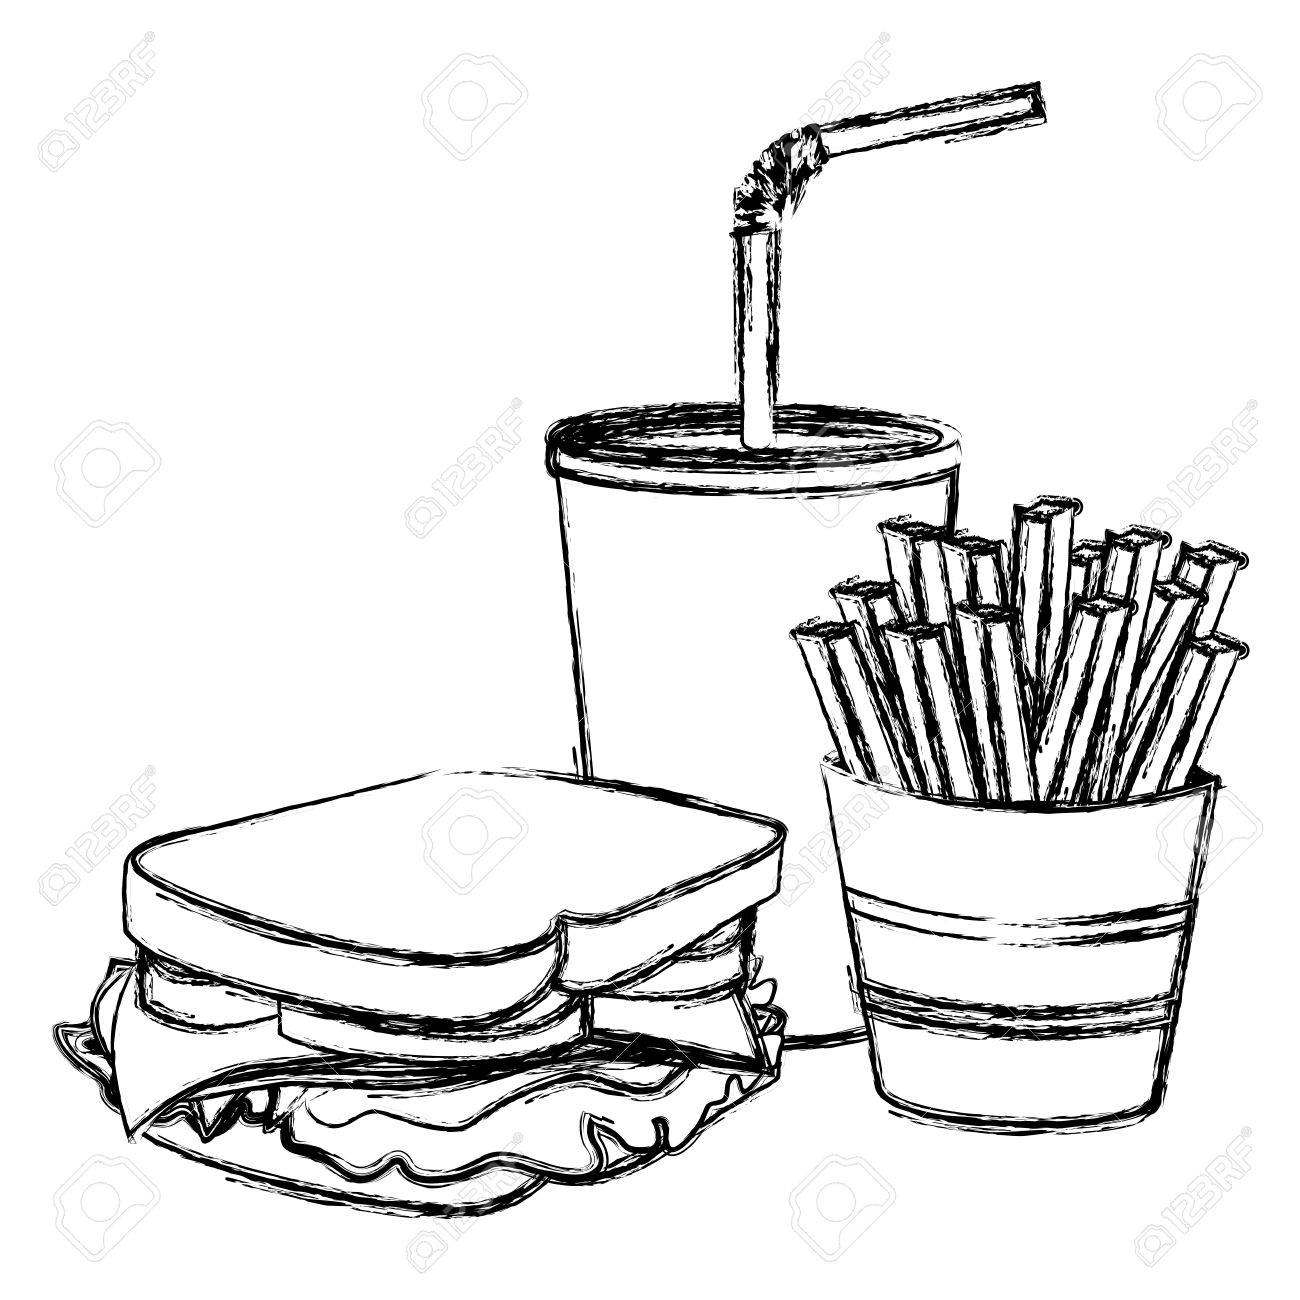 1300x1300 Monochrome Sketch Of Sandwich With French Fries And Soda Vector